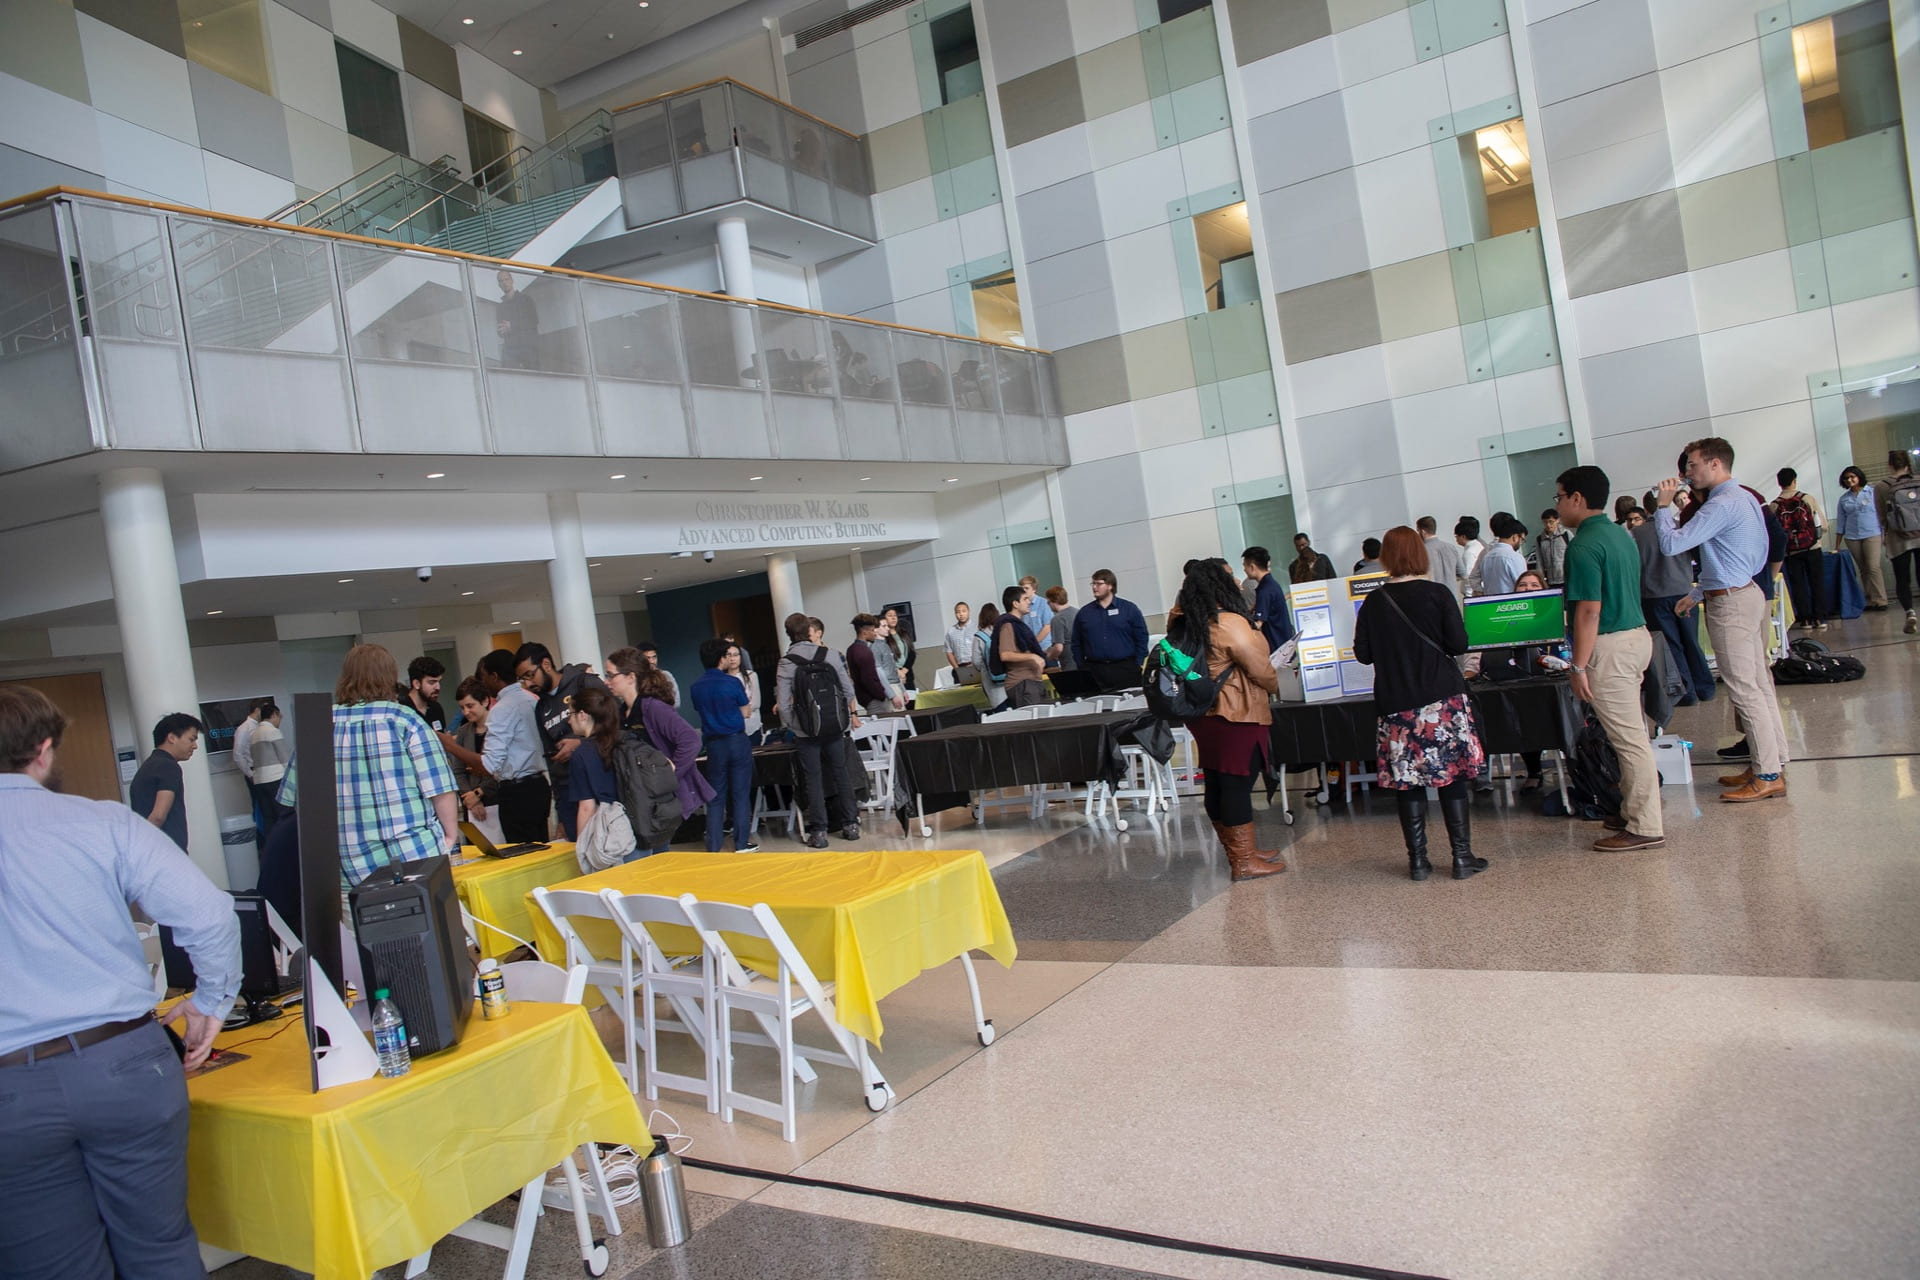 The Klaus Atrium is filled with people at a student capstone expo